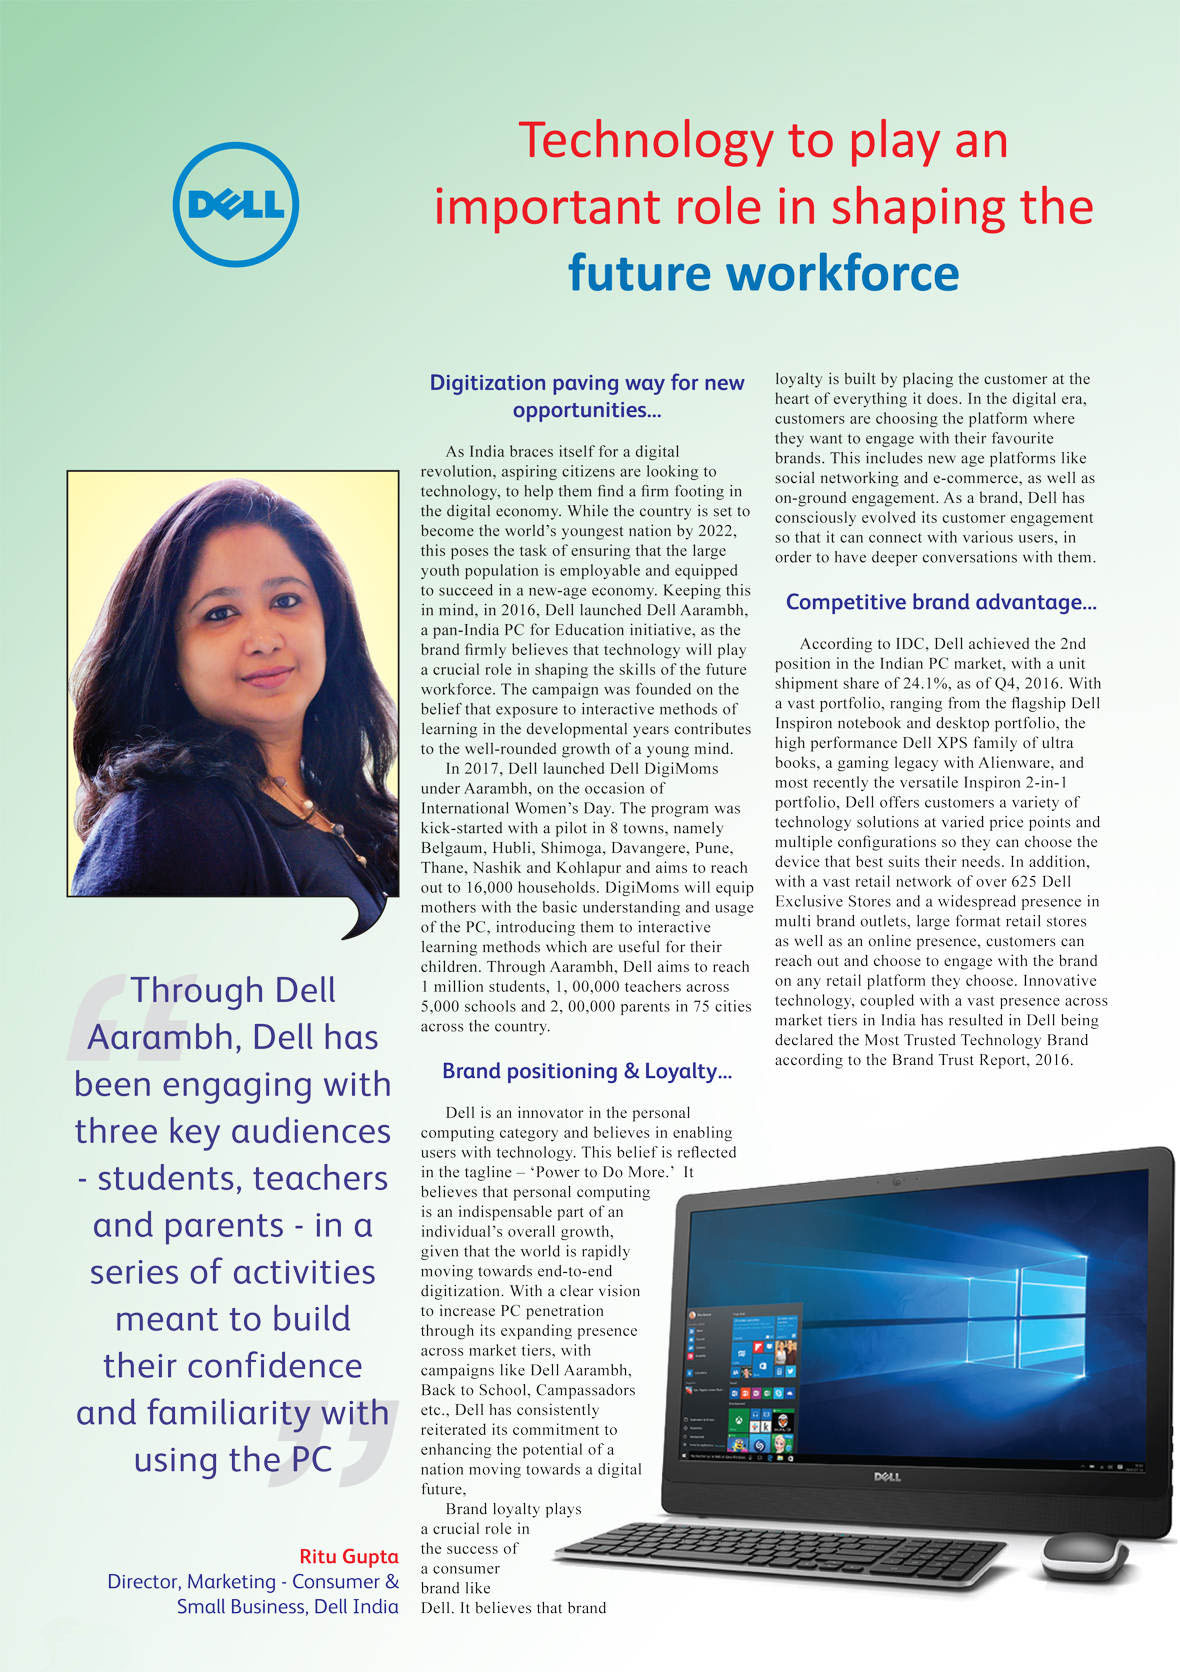 Dell : Technology to play an important role in shaping the future workforce